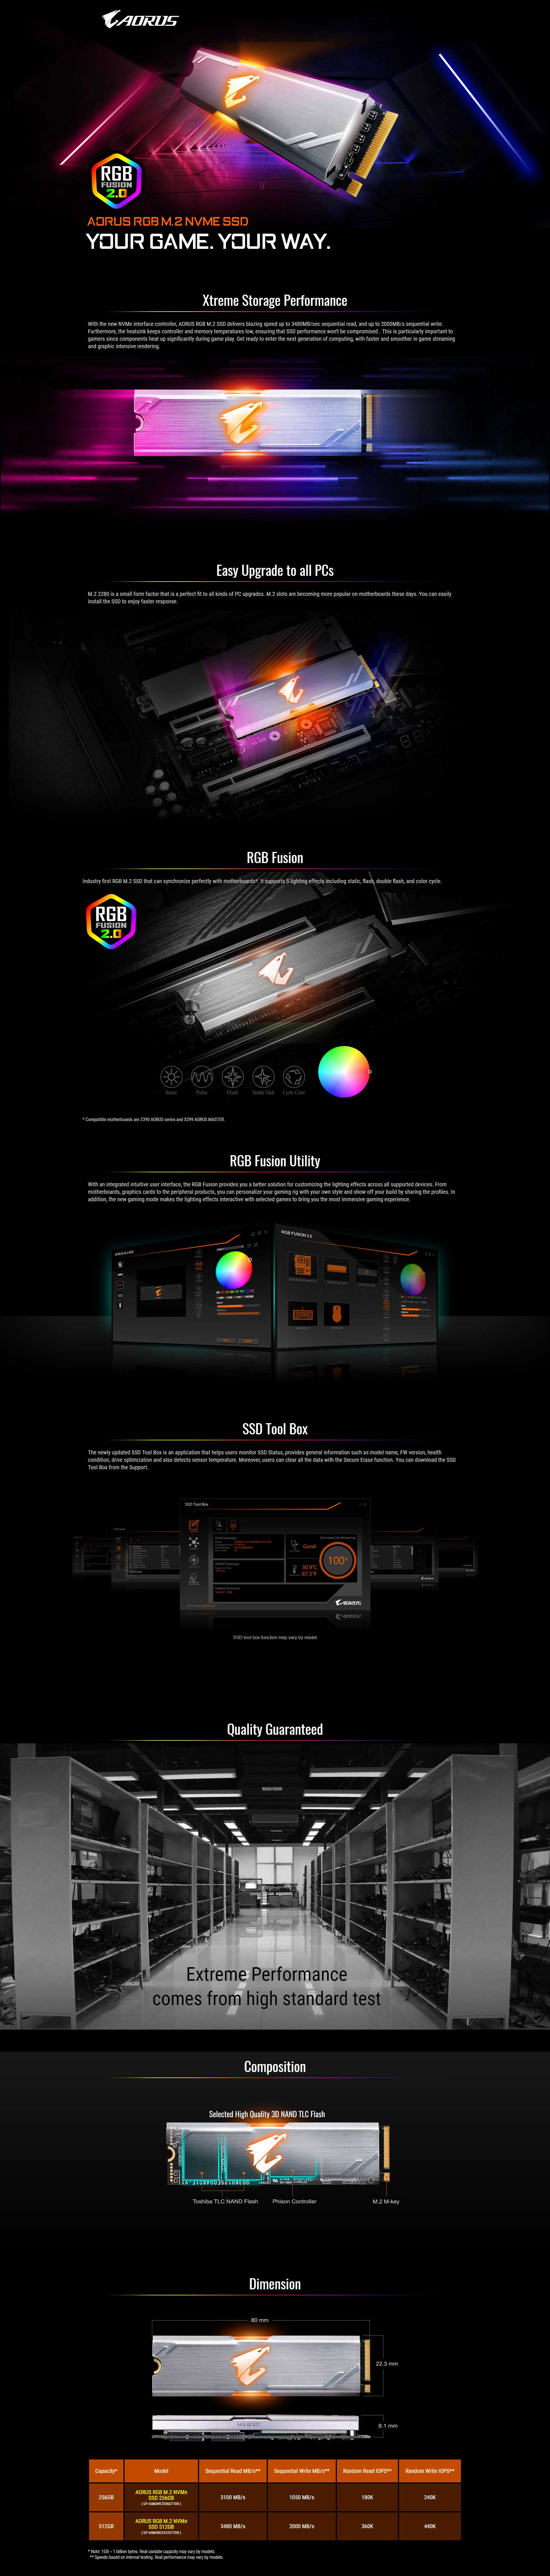 A large marketing image providing additional information about the product Gigabyte AORUS 512GB RGB M.2 NVMe SSD - Additional alt info not provided